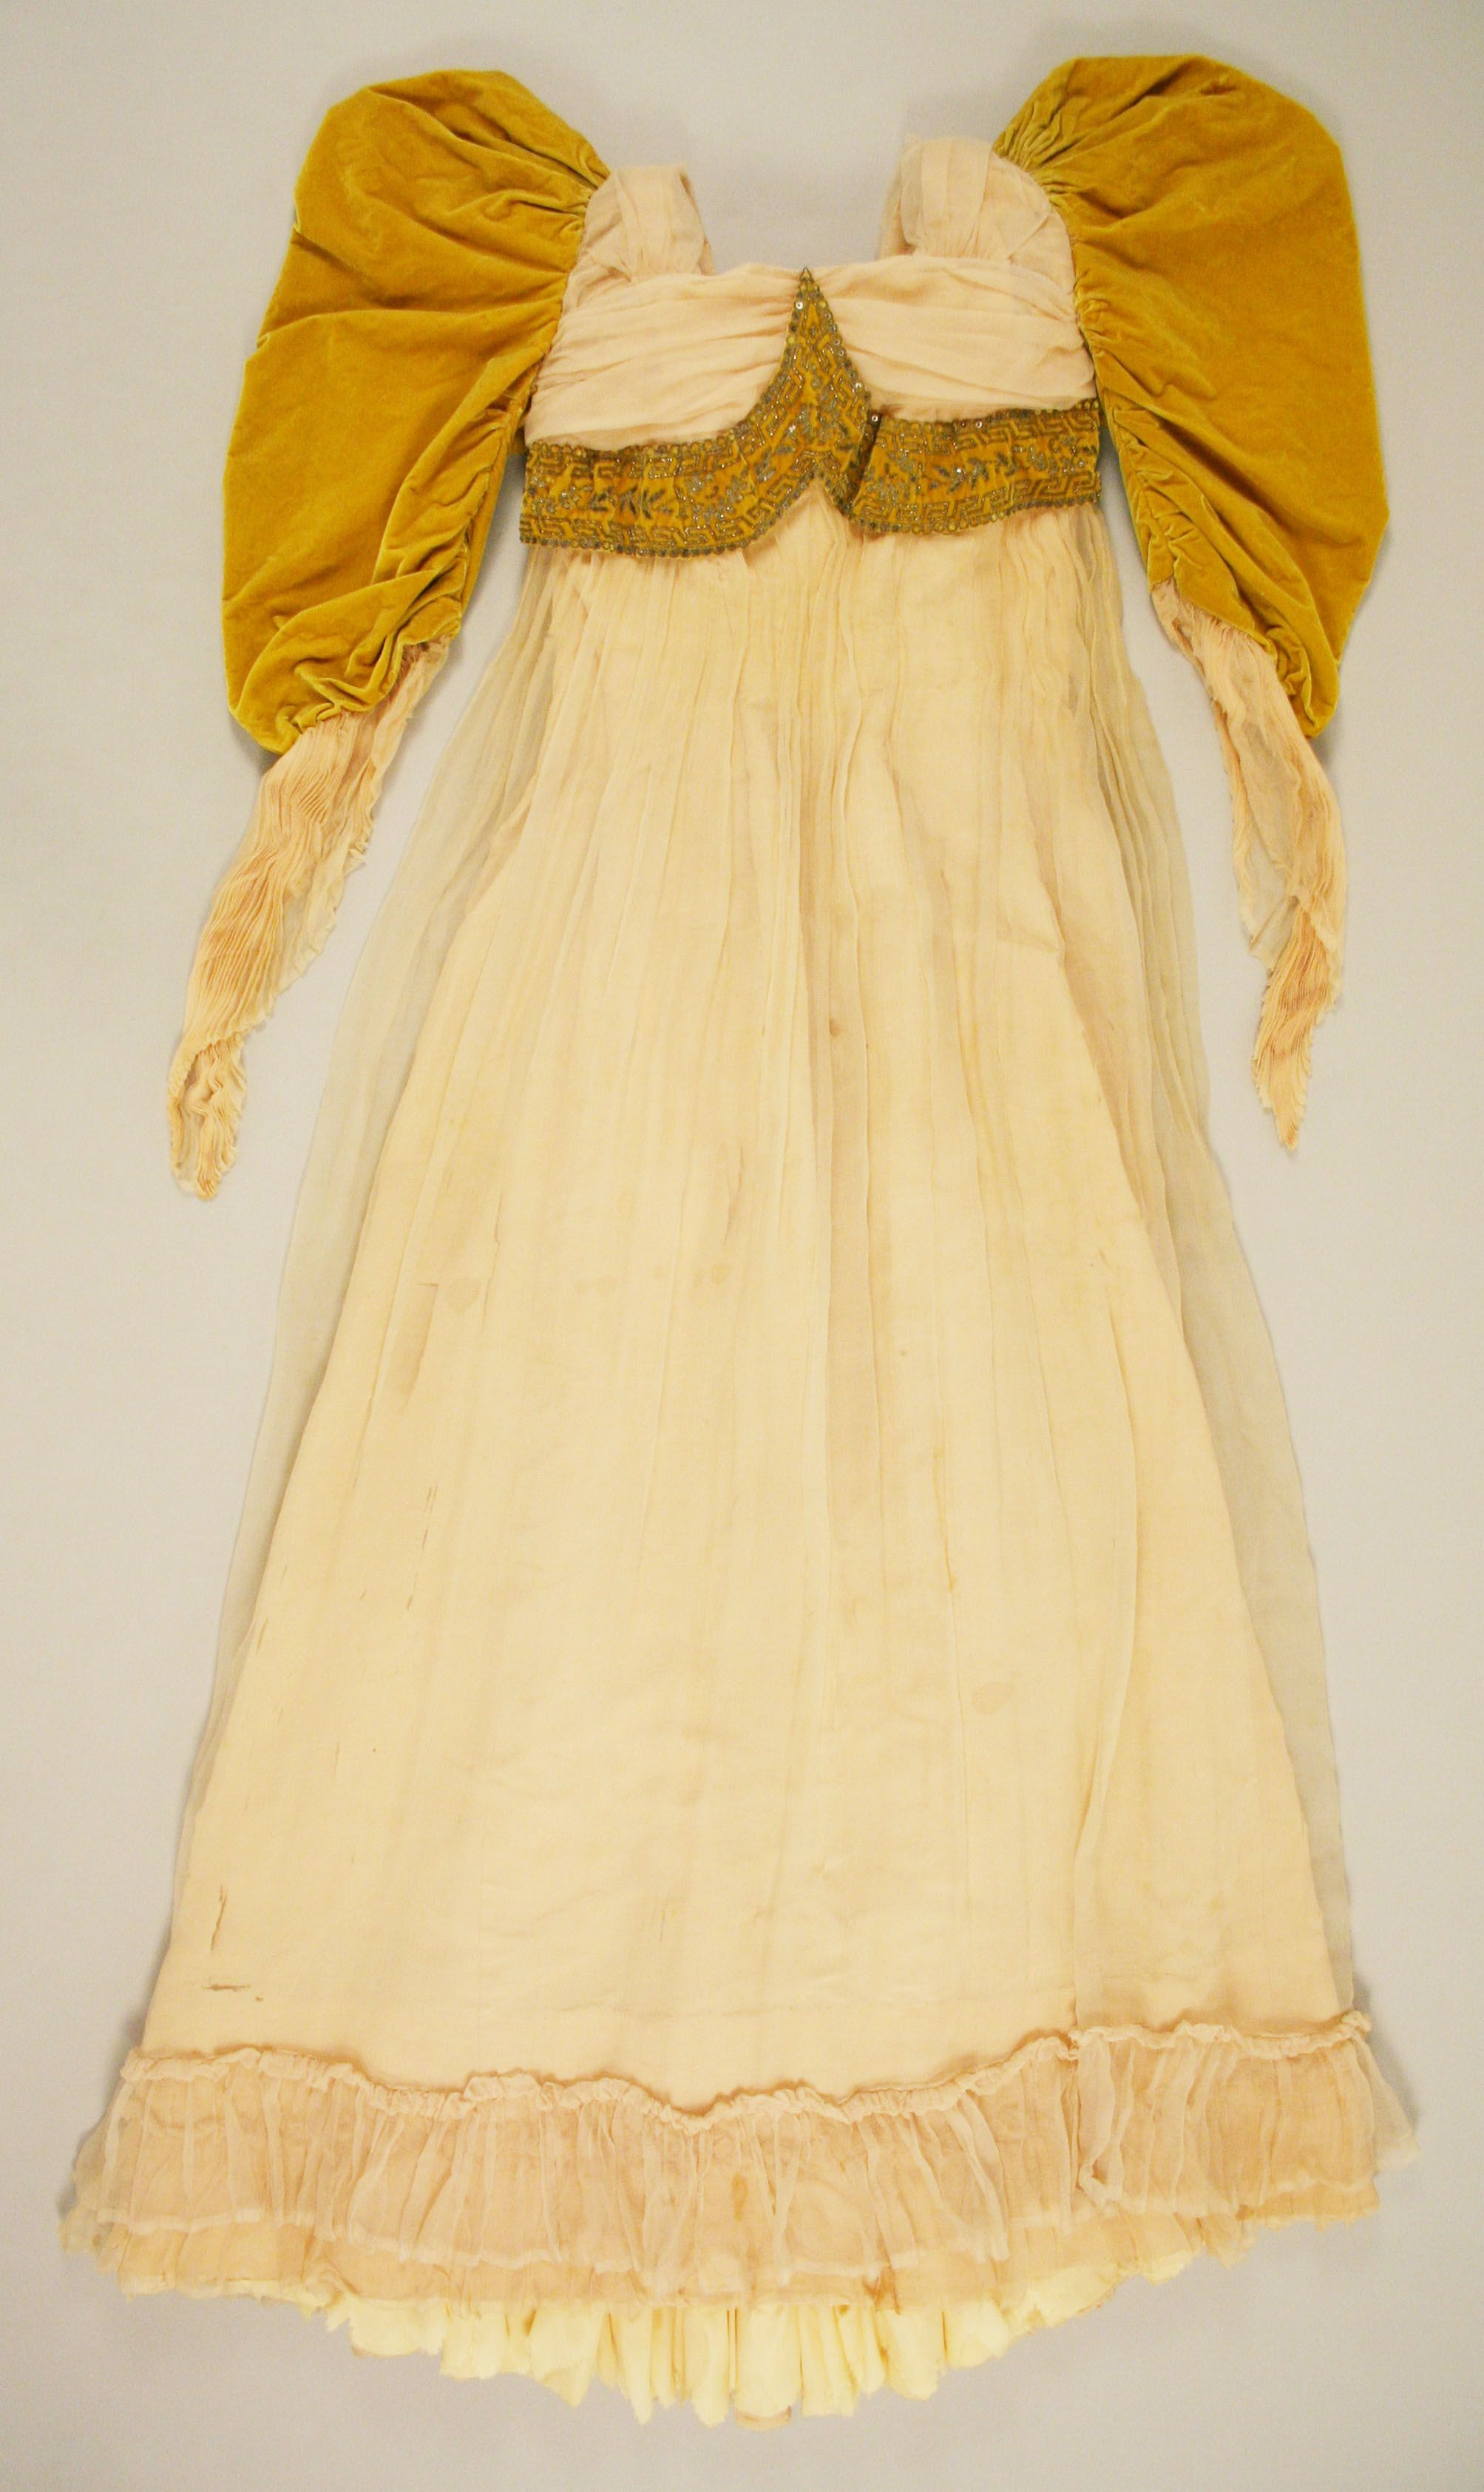 1891, France - Evening dress - Silk, glass, metal